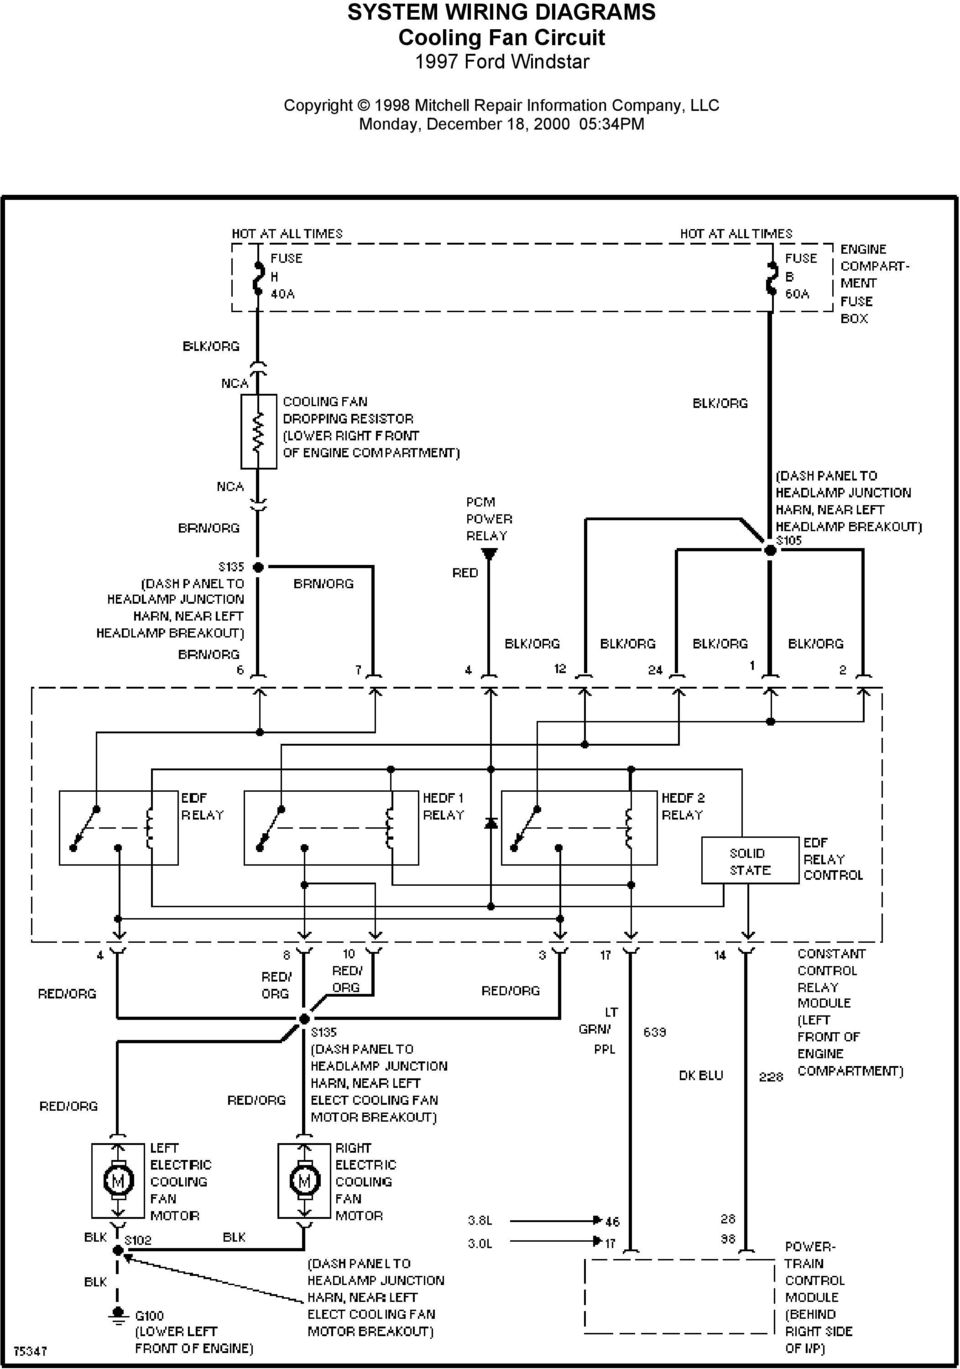 System Wiring Diagrams Air Conditioning Circuits 1997 Ford Windstar 2008 Silverado Cruise Control Diagram 7 Circuit Monday December 18 34pm